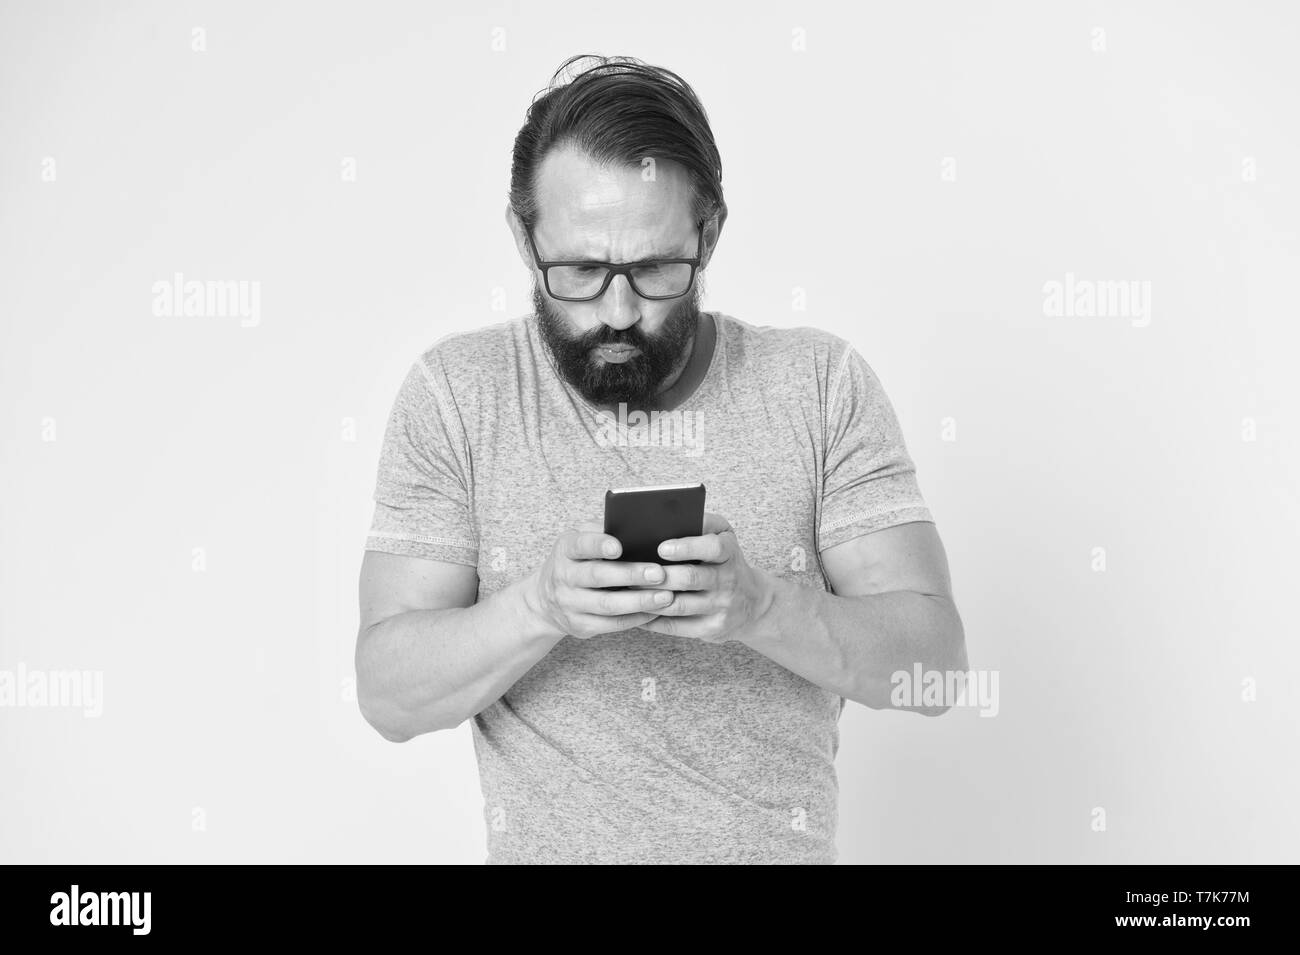 Hipster puzzled use smartphone. Man inexperienced user of modern smartphone. Stay in touch with smartphone. Join online community. User friendly concept. Man puzzled mobile phone opportunities. - Stock Image